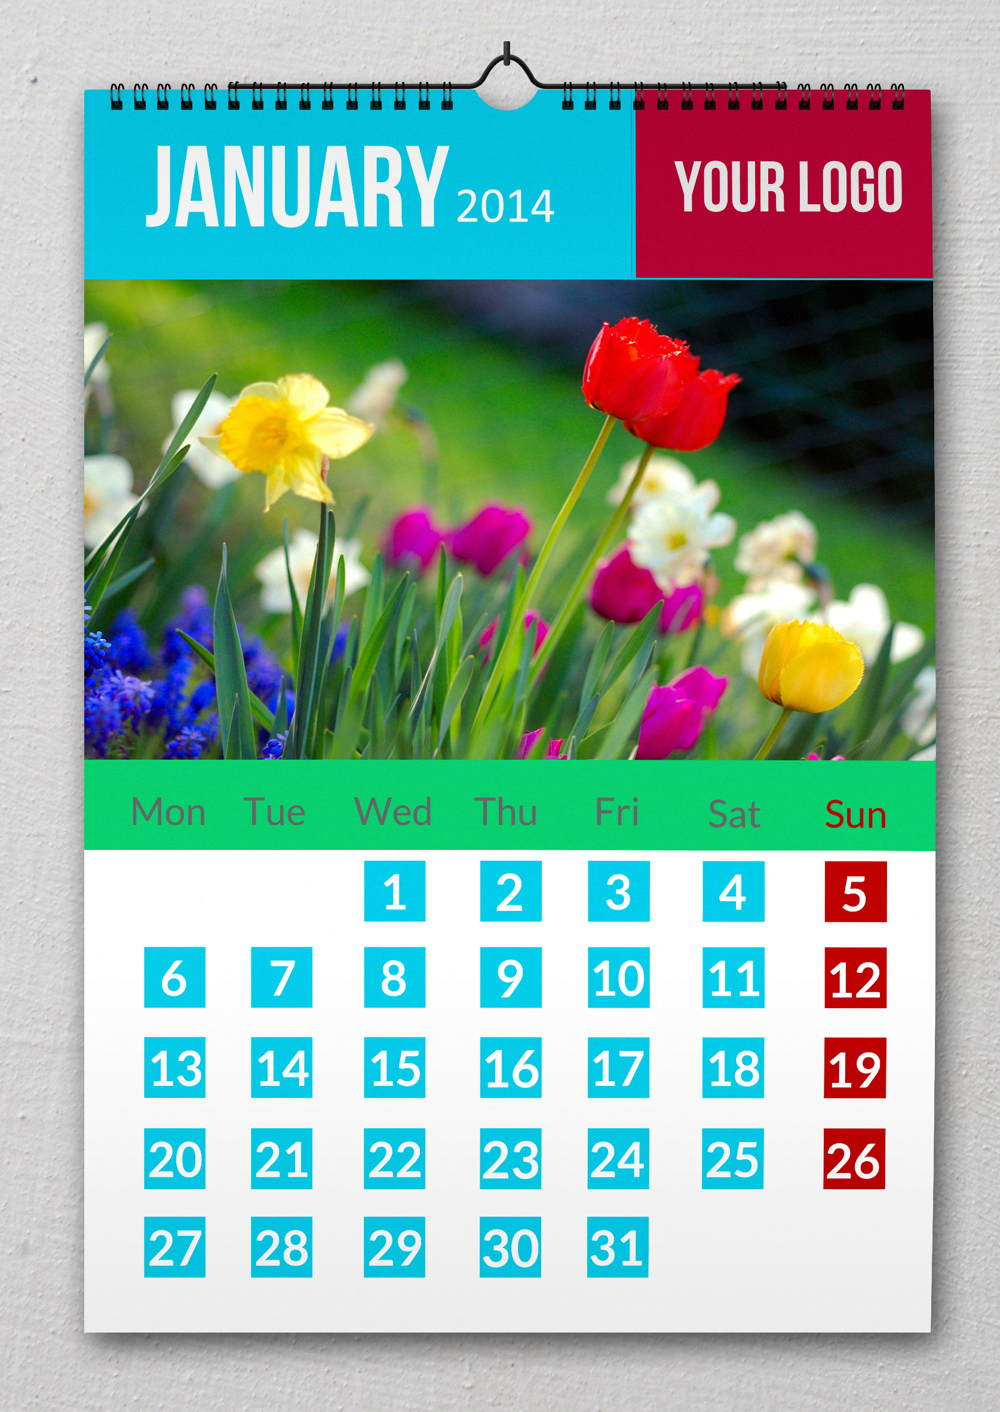 Latest Wall Calendar Design : Wall calendar design with psd file by redfoxmag on